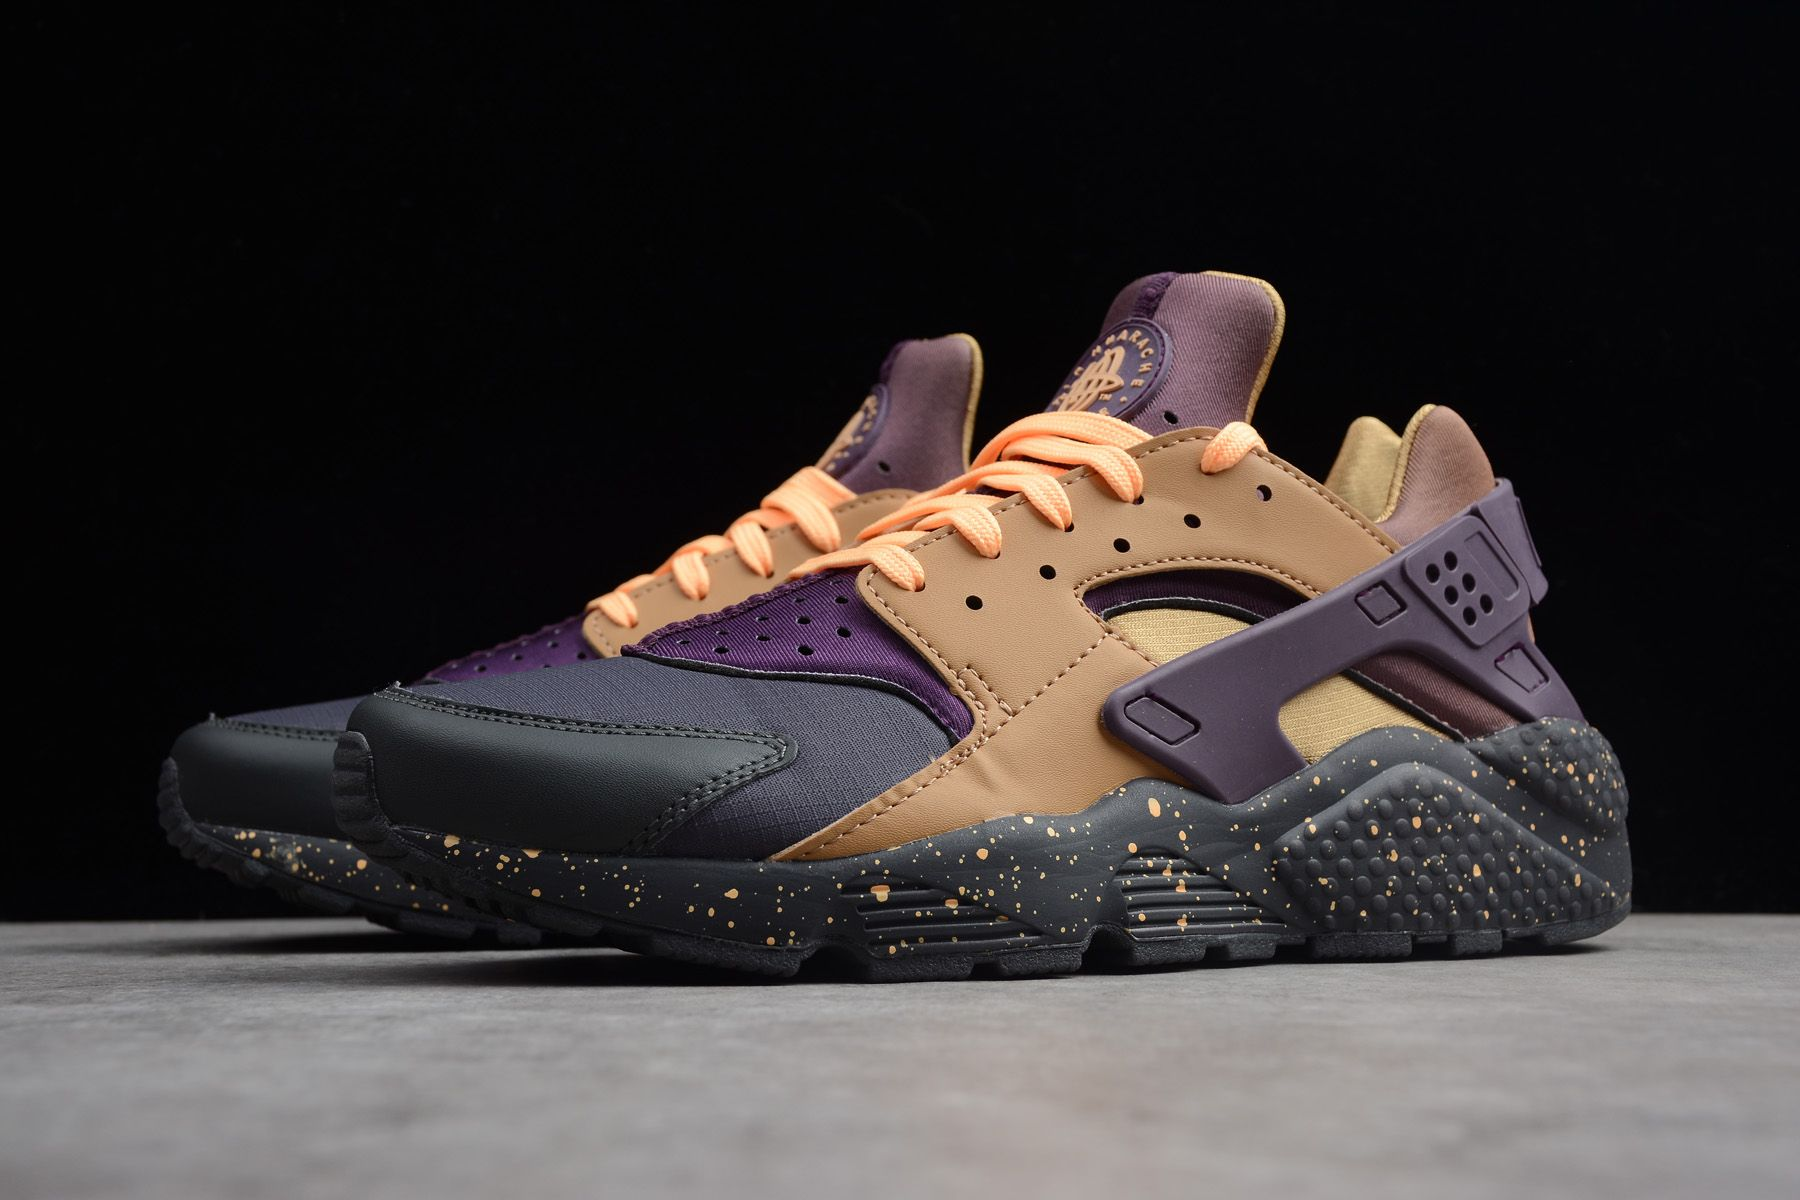 b24d1bc66bc2d3 Nike Air Huarache Run Premium Anthracite Pro Purple Elemental Gold  704830-012